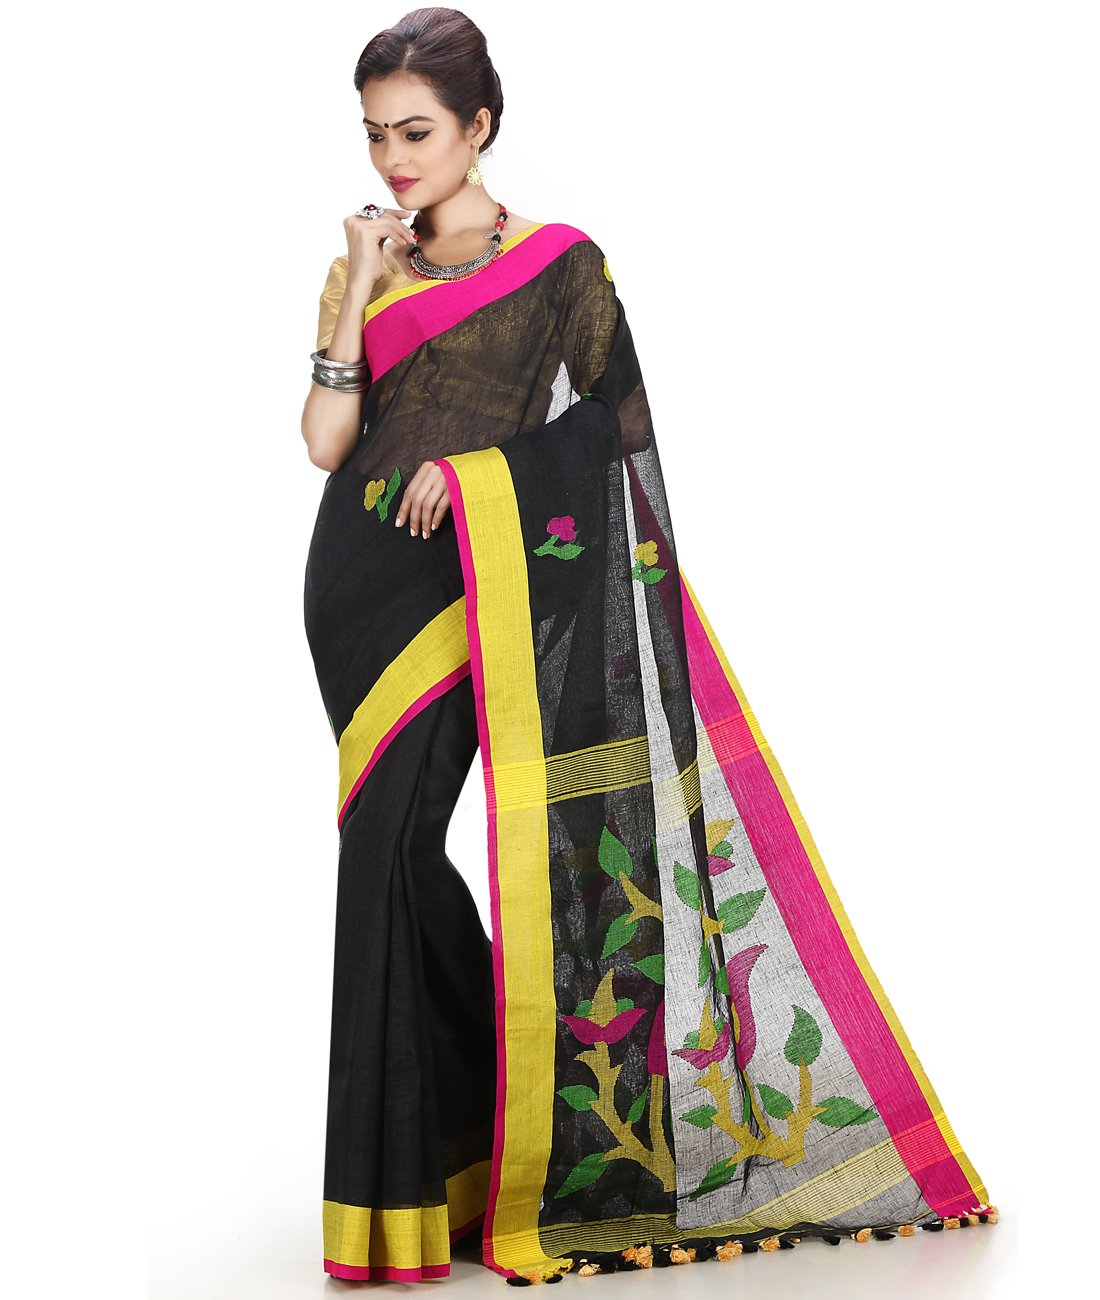 Maahir Garments Exclusive Indian Ethnicwear Linen Black coloured Handloom Saree